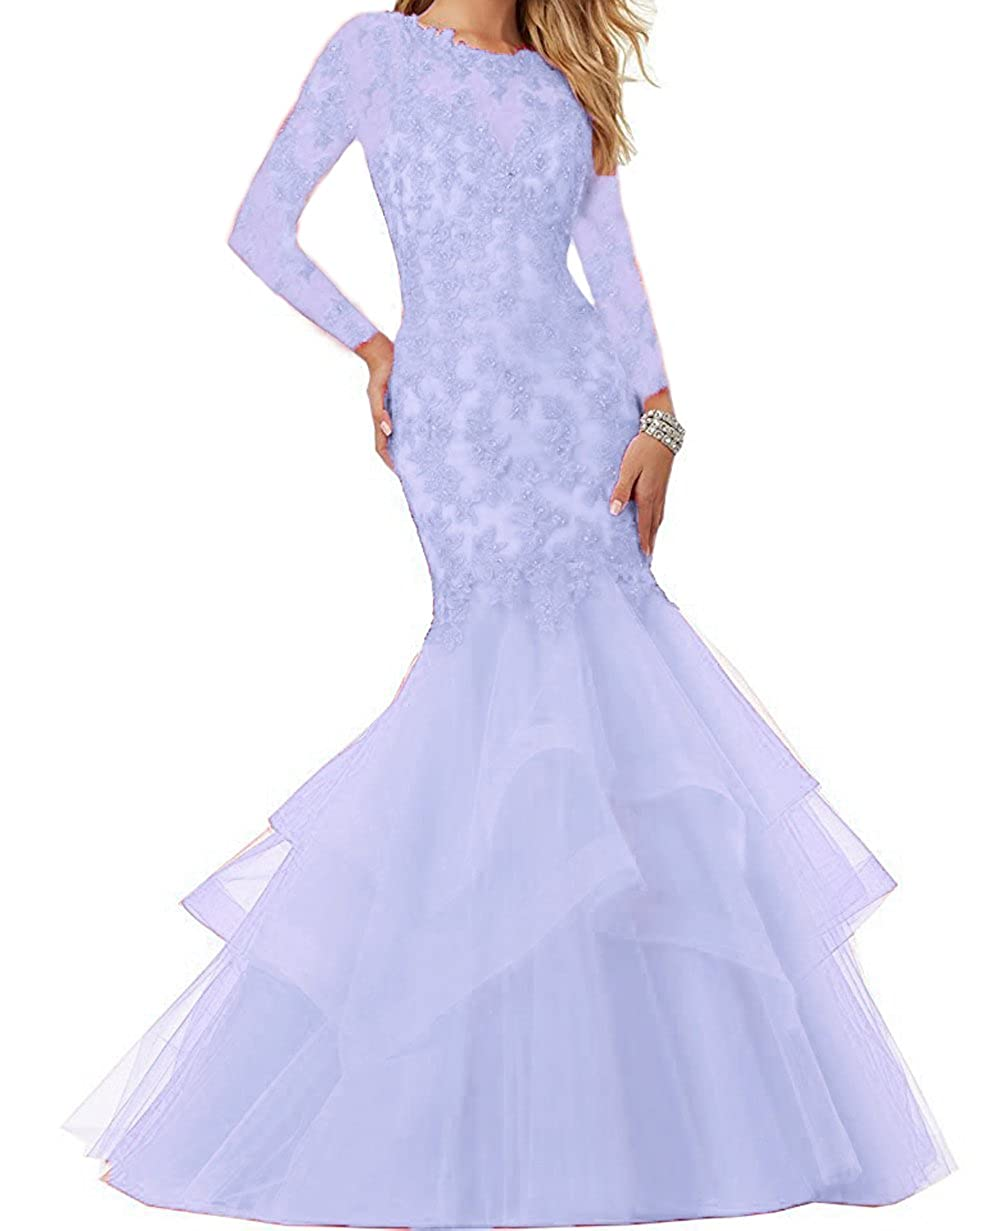 Lavender Ellenhouse Women's Long Sleeve Mermaid Applique Prom Party Evening Dresses EL339